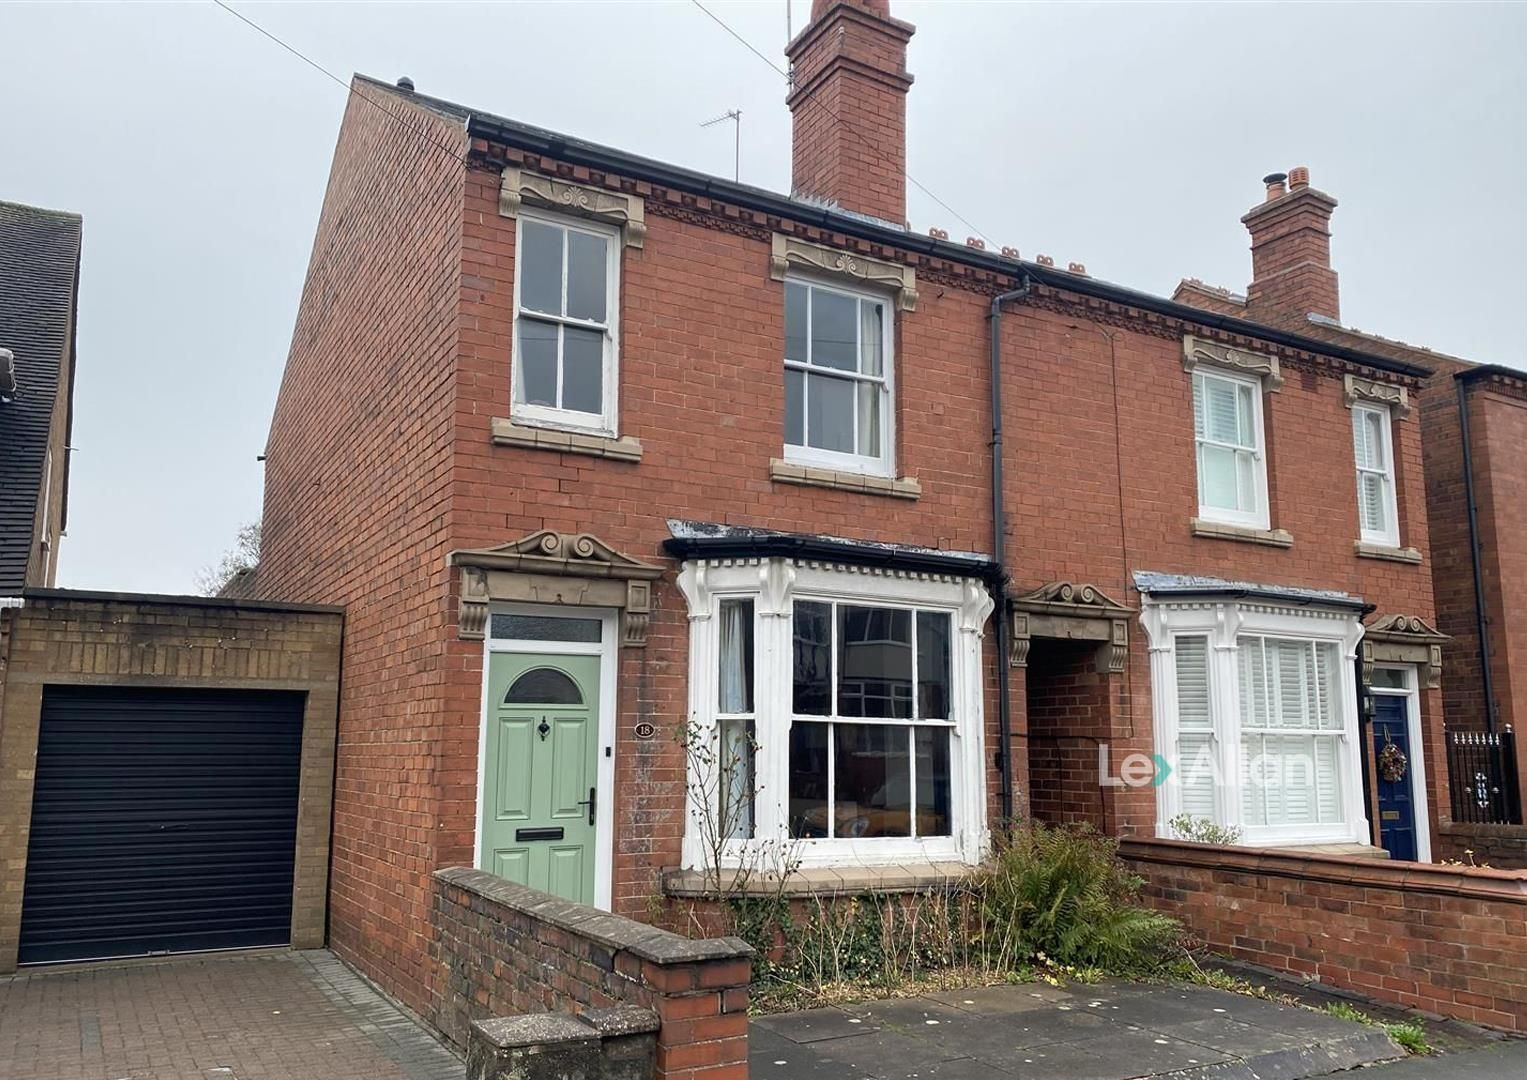 2 bed semi-detached for sale, DY8